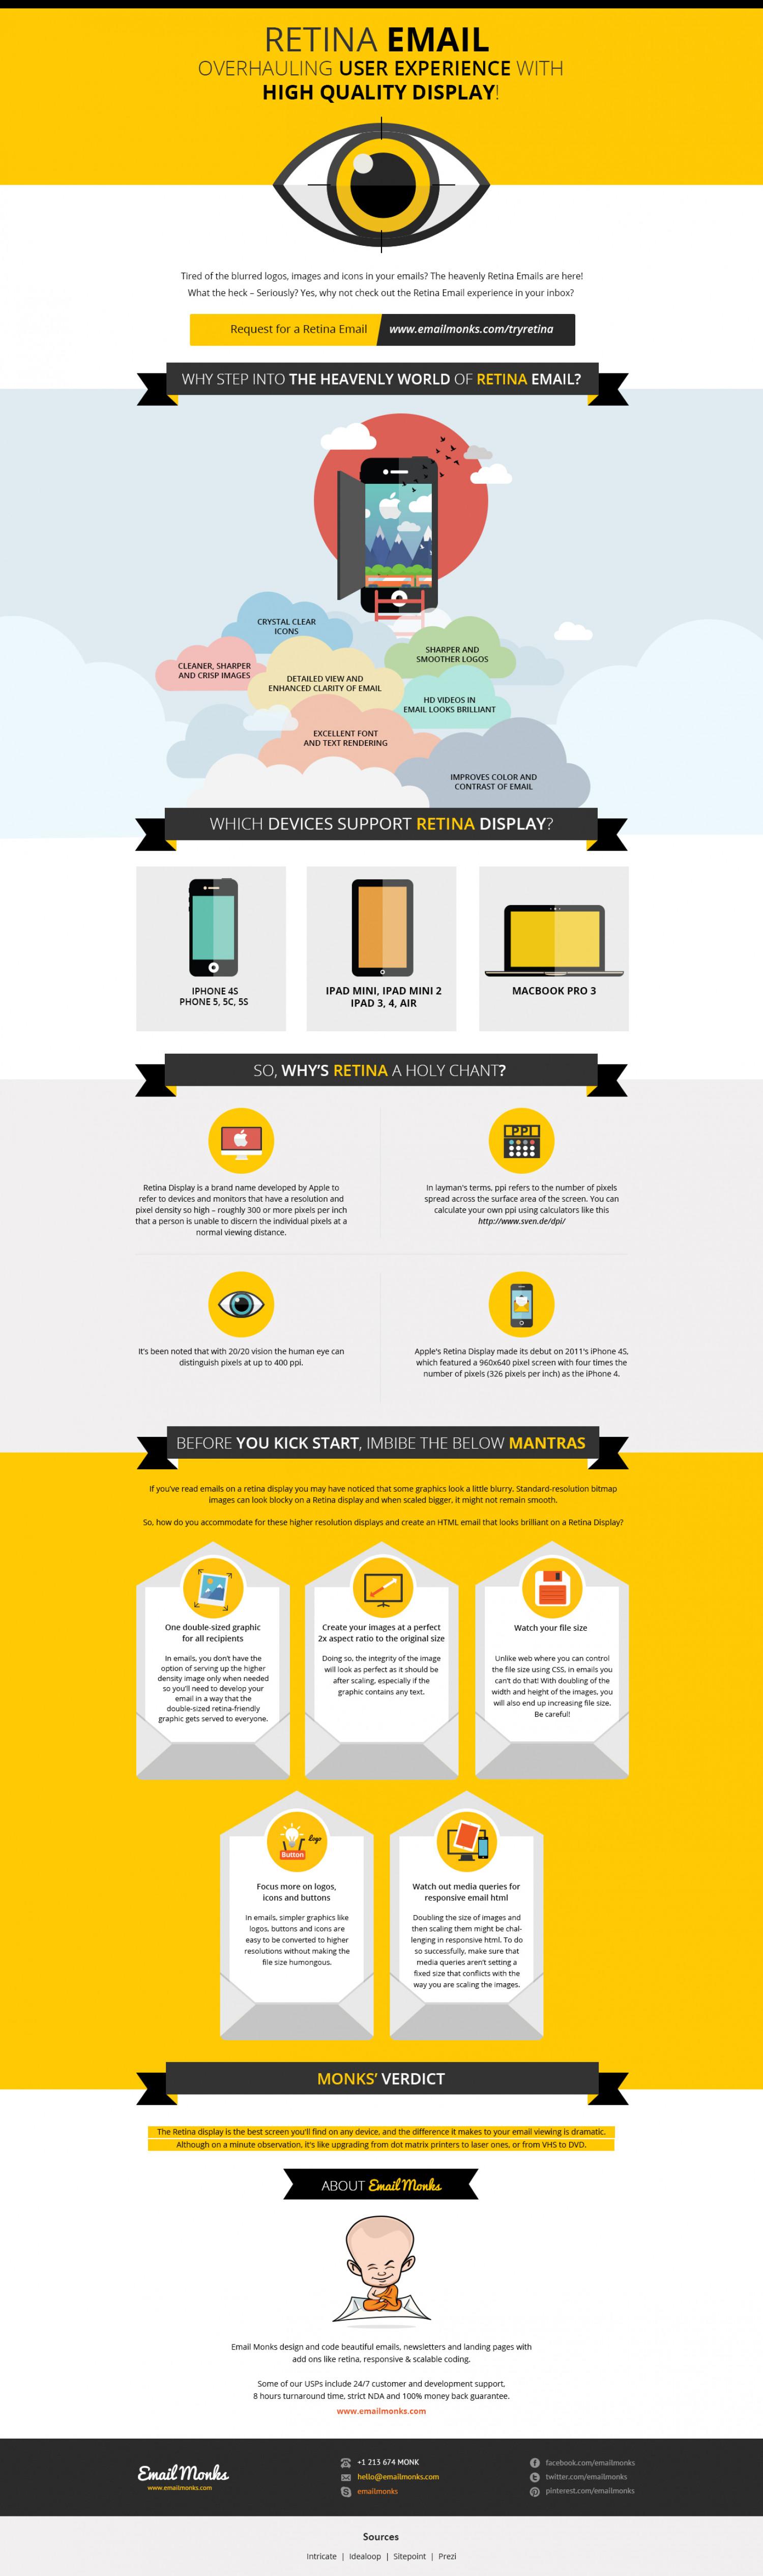 Retina Email – Overhauling User Experience with High Quality Display! Infographic